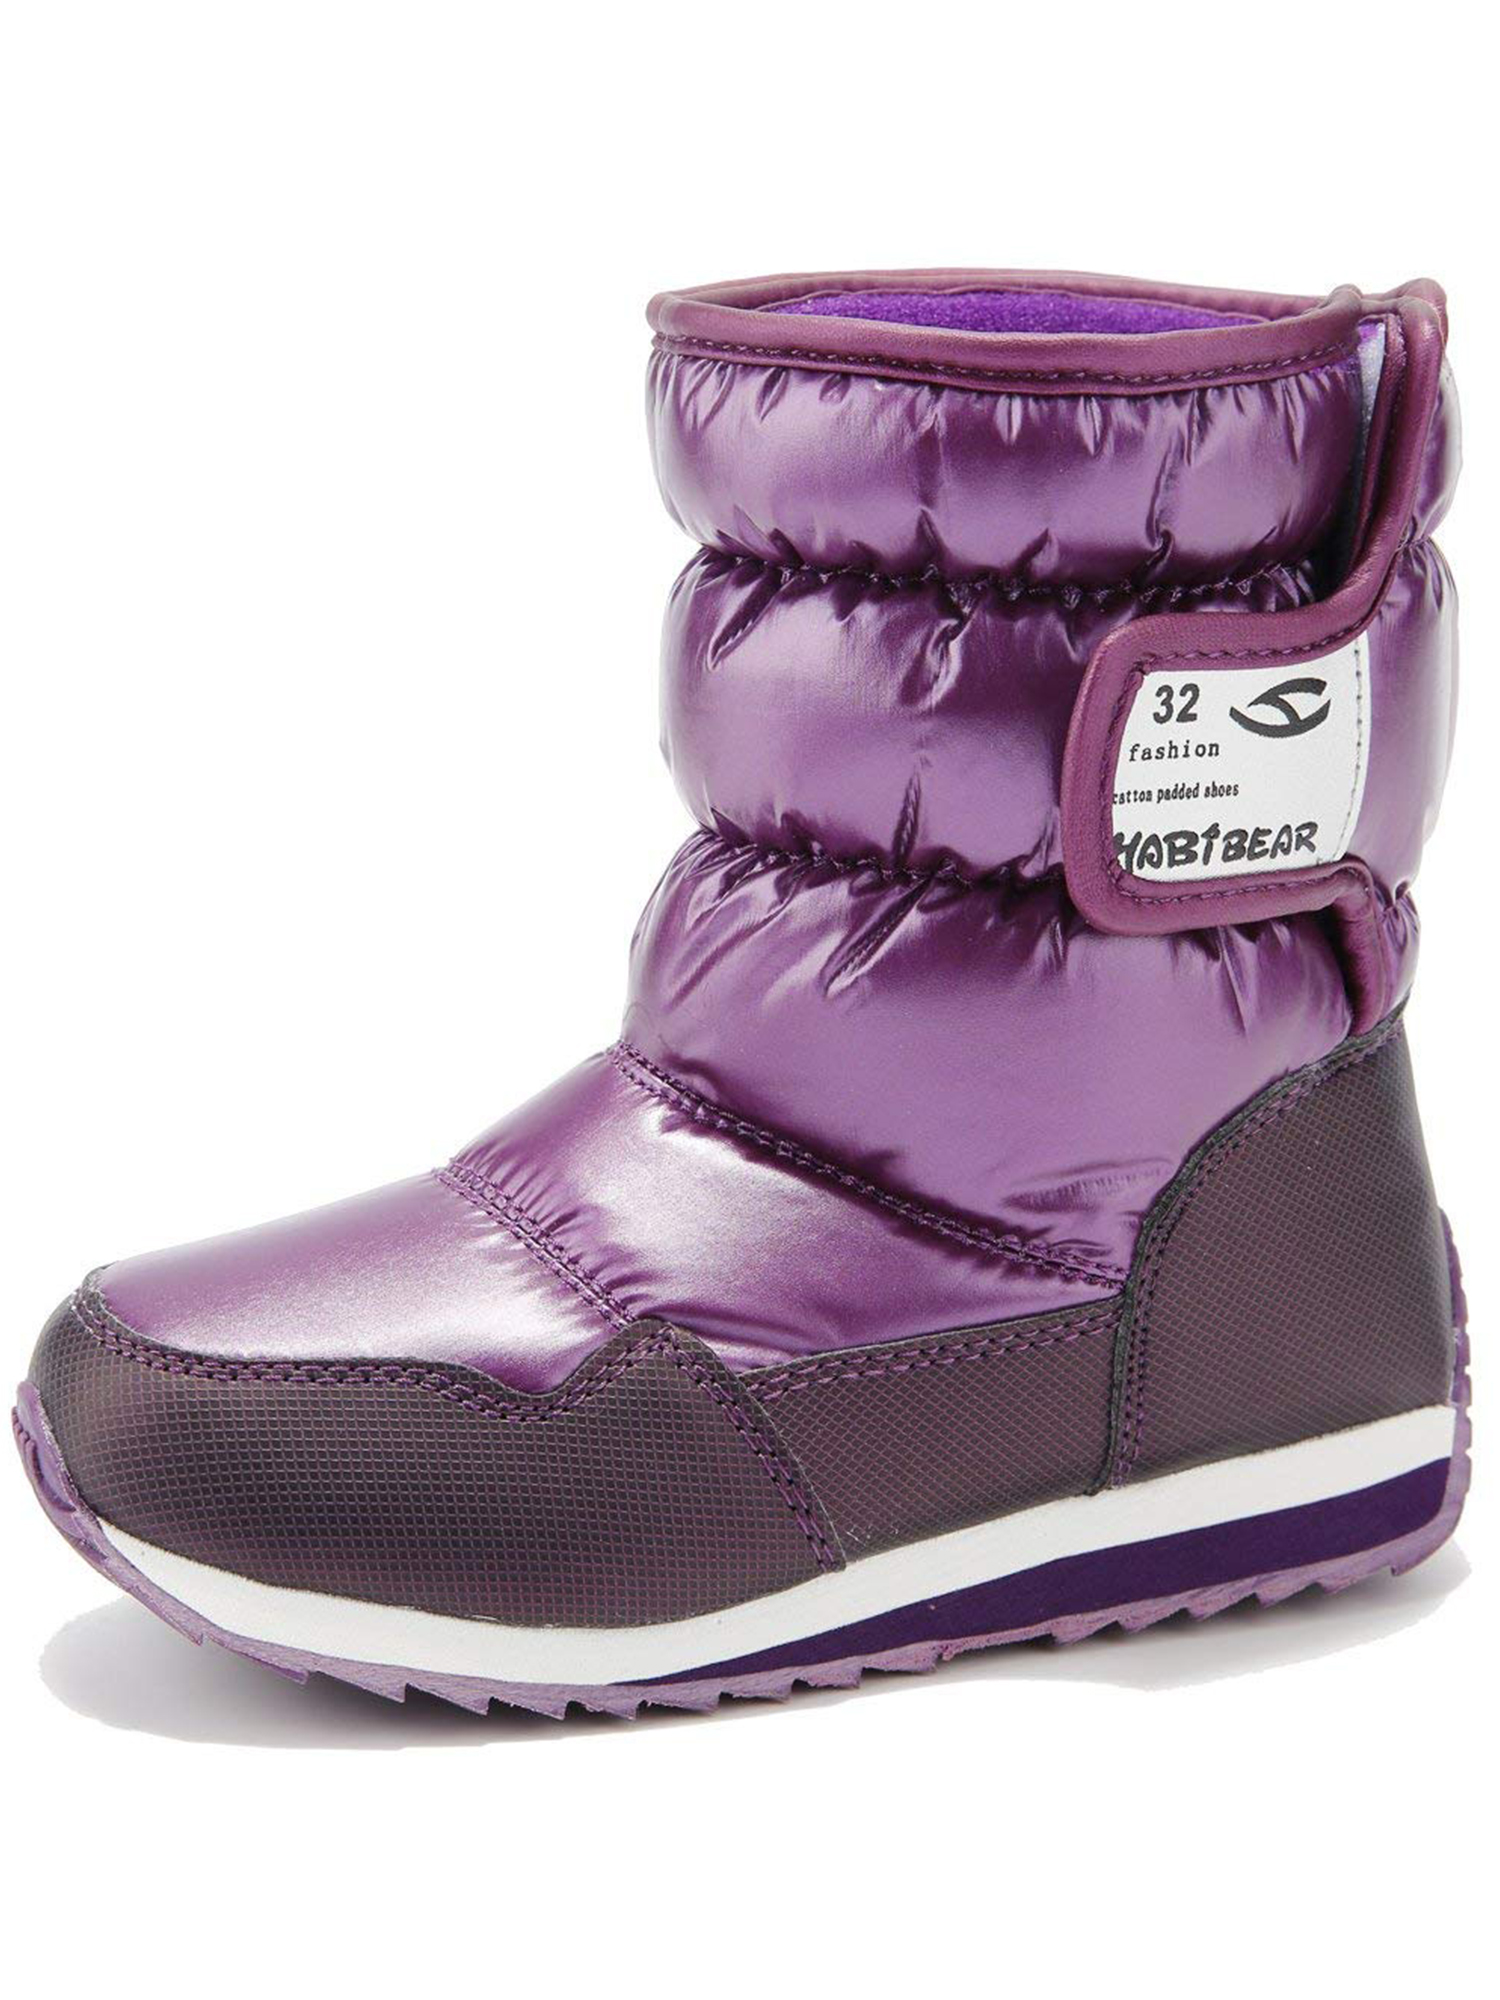 Snow Boots for Boys and Girls Outdoor Waterproof Cold Weather Shoes(Toddler/Little Kid/Big Kid)